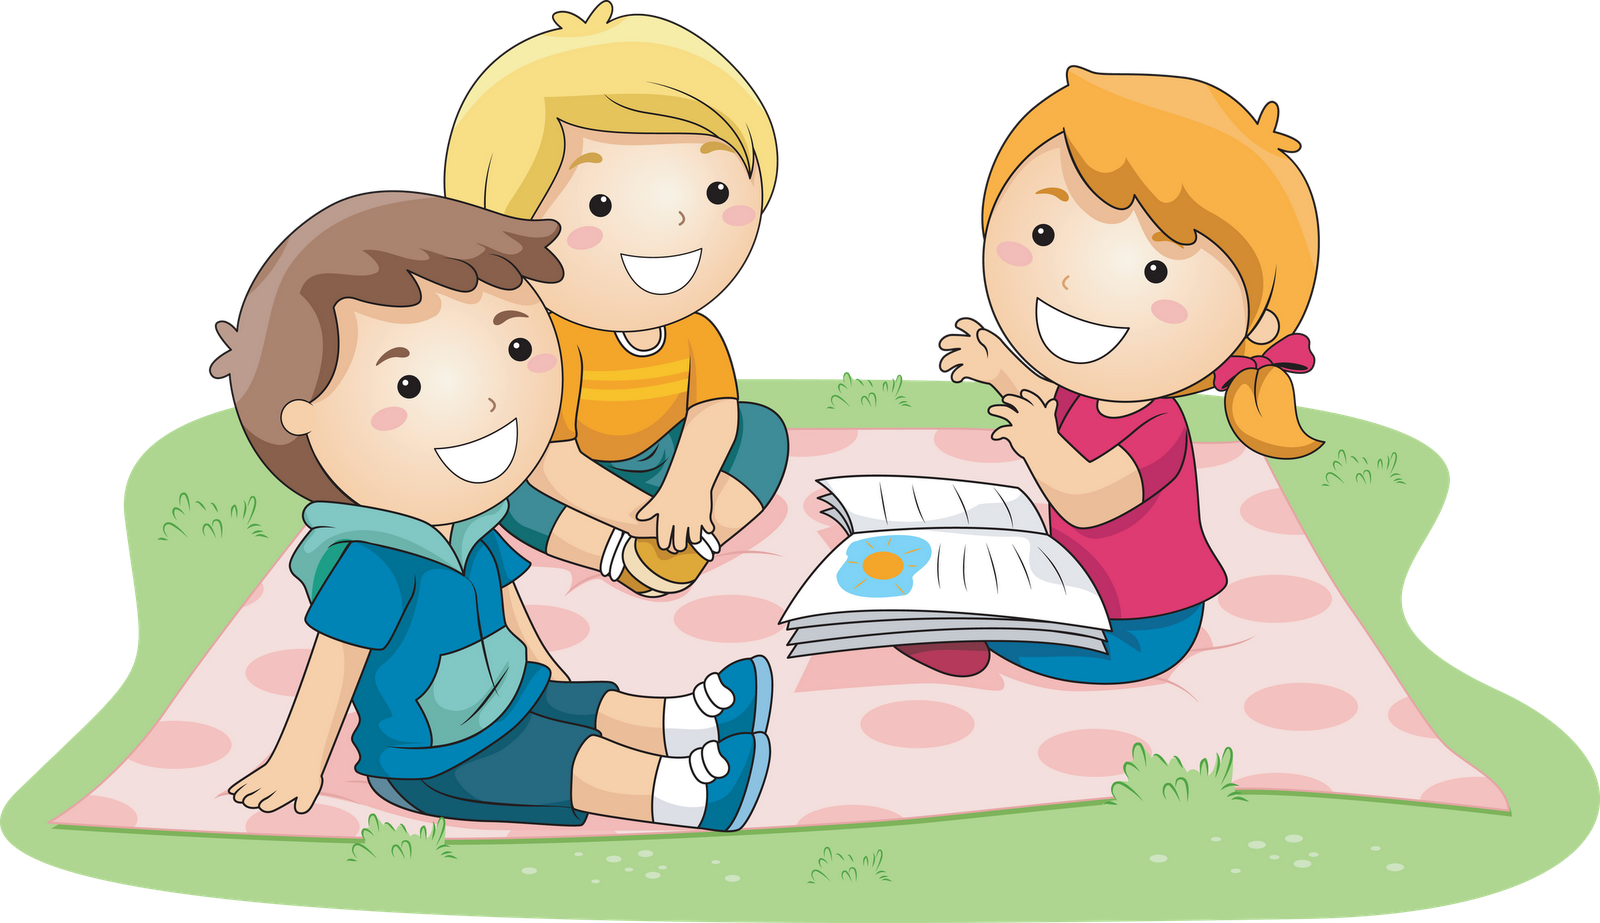 Children cartoon png. Hd images of transparent